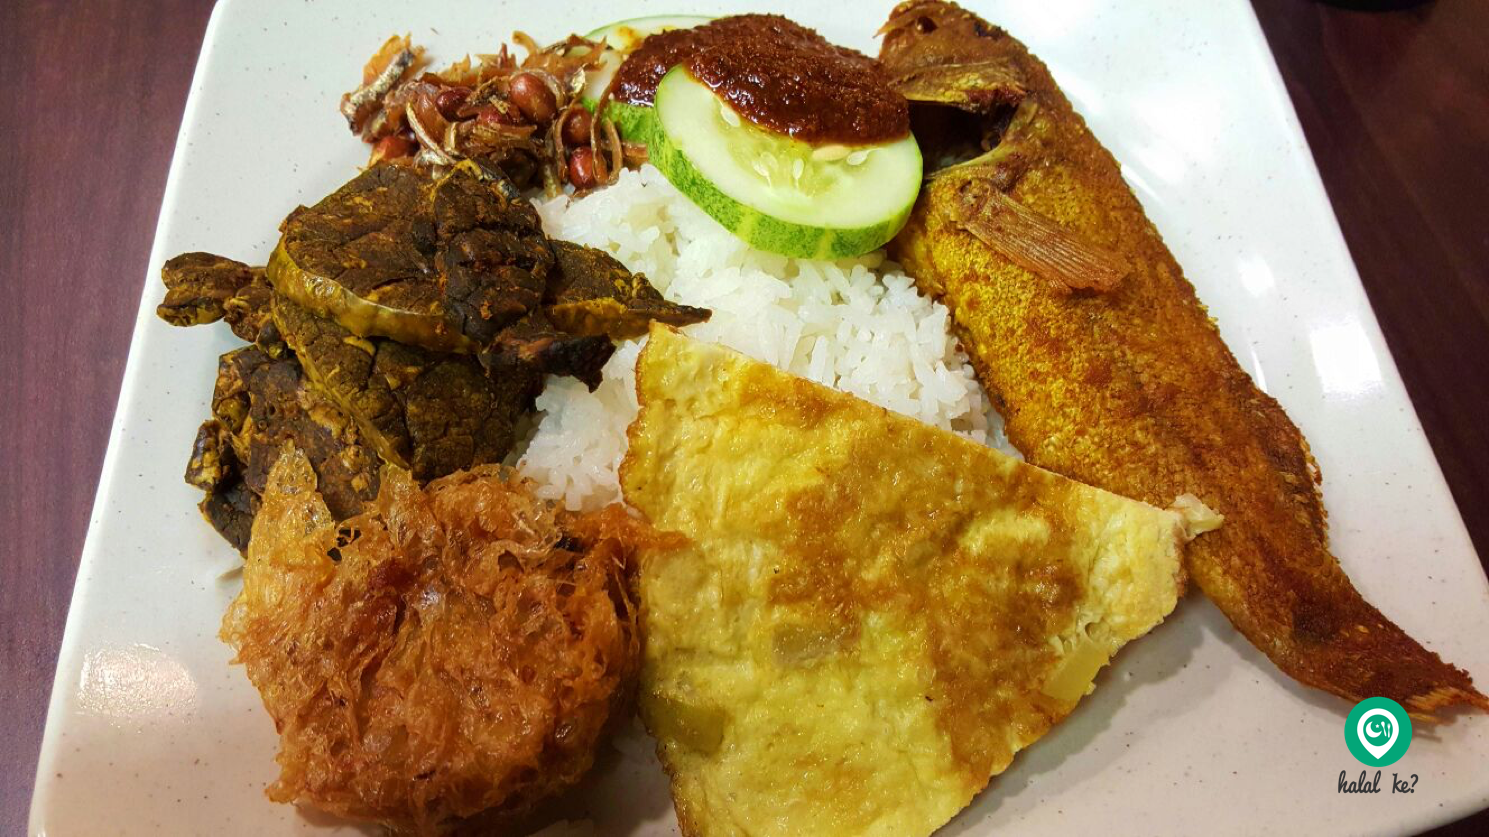 The Putri Hayyu Authentic Cafe at Selegie Road, Singapore is always packed with customers especially during lunch hour. Be sure to try their Nasi Lemak!